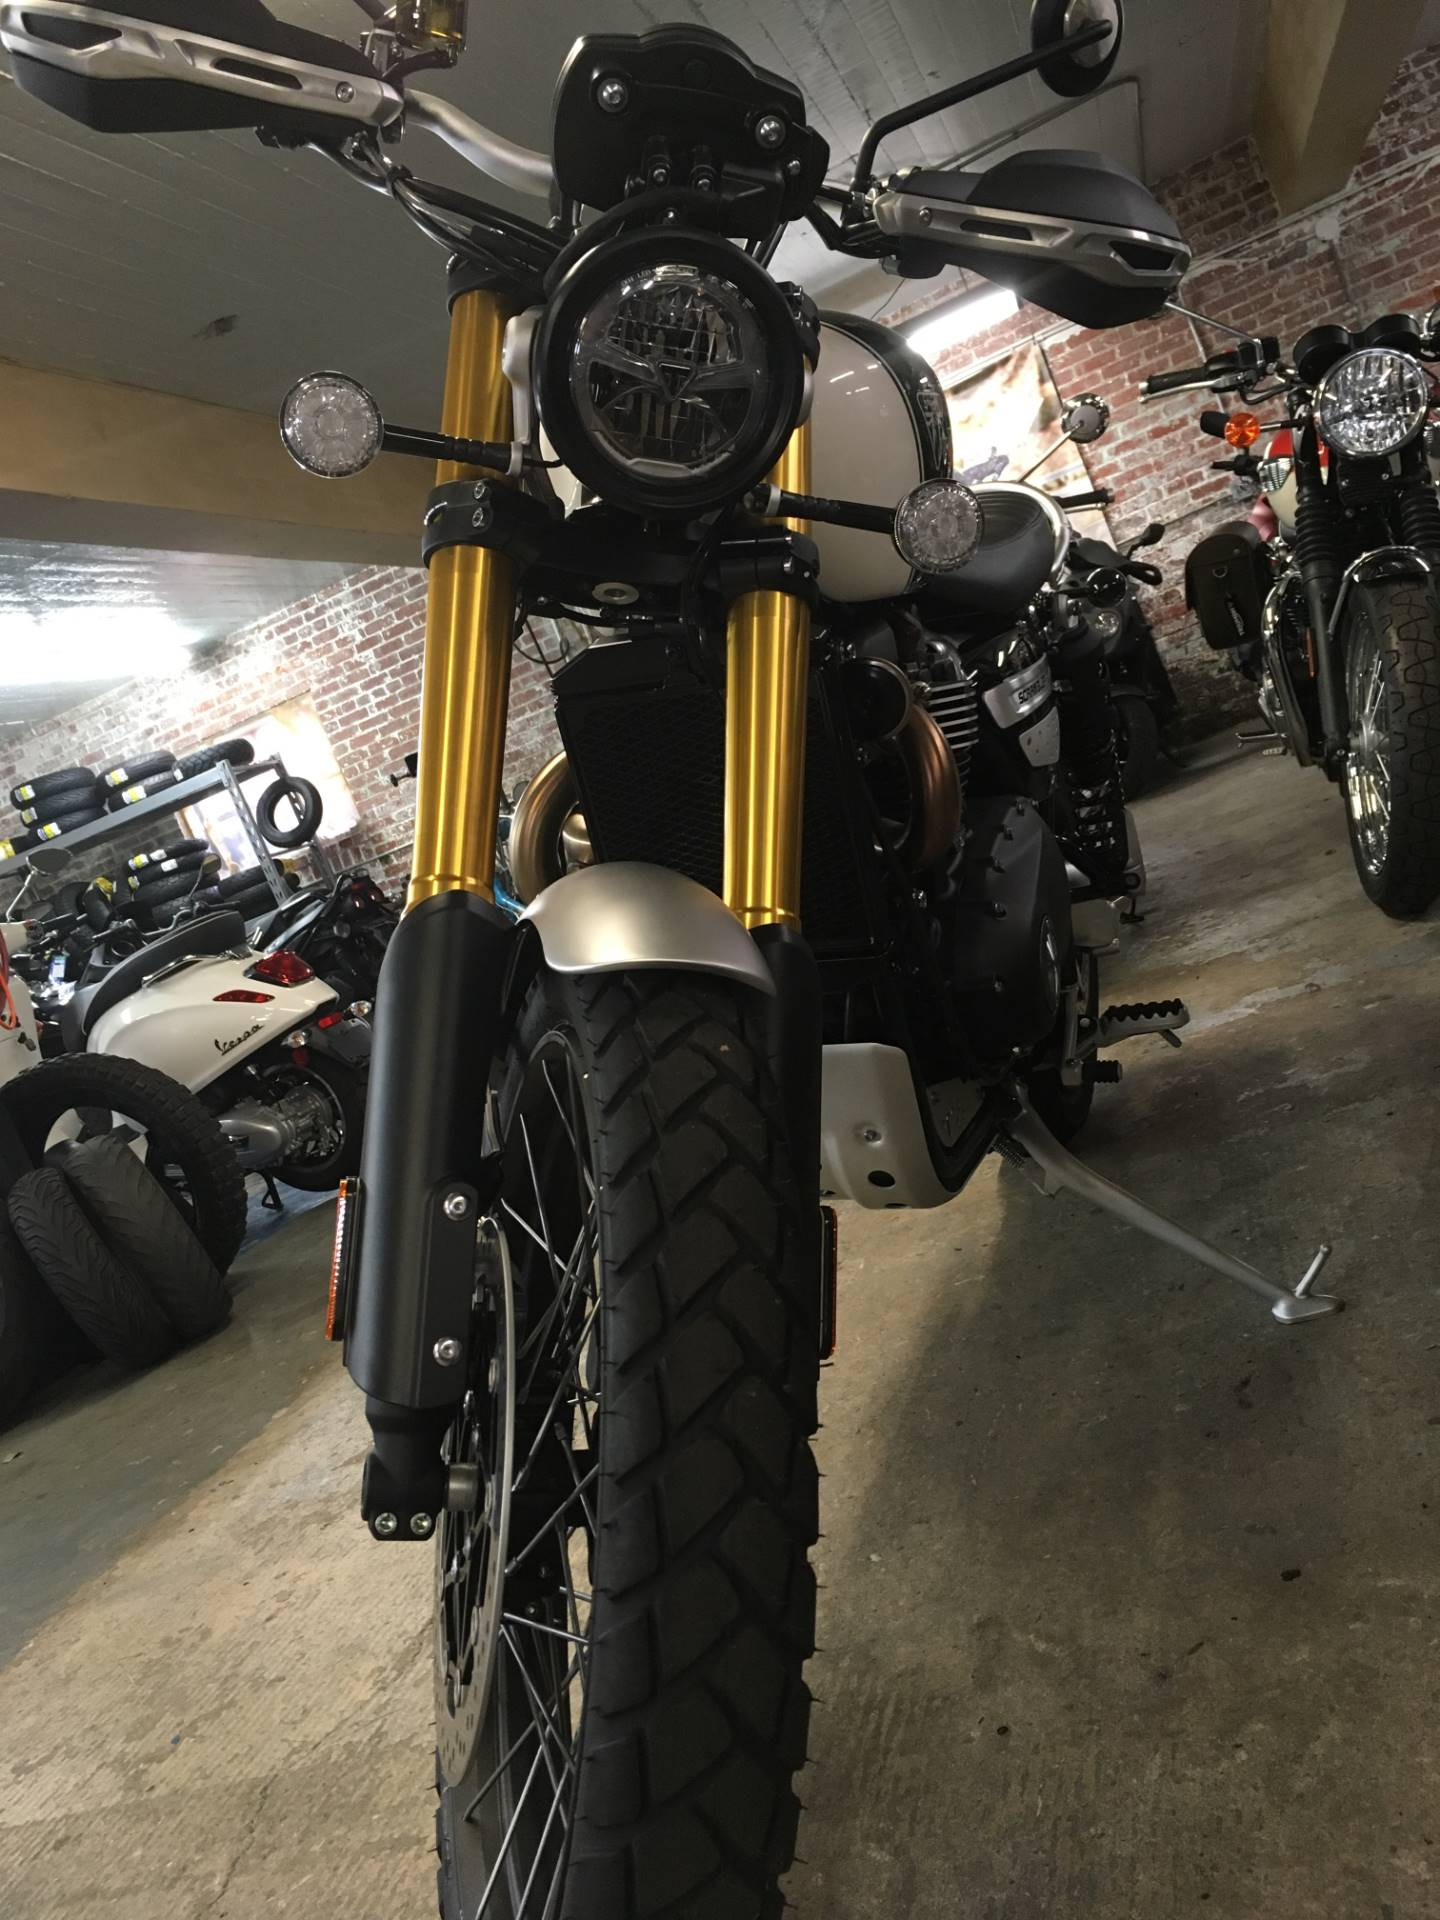 2019 Triumph Scrambler 1200 XE in Greensboro, North Carolina - Photo 5